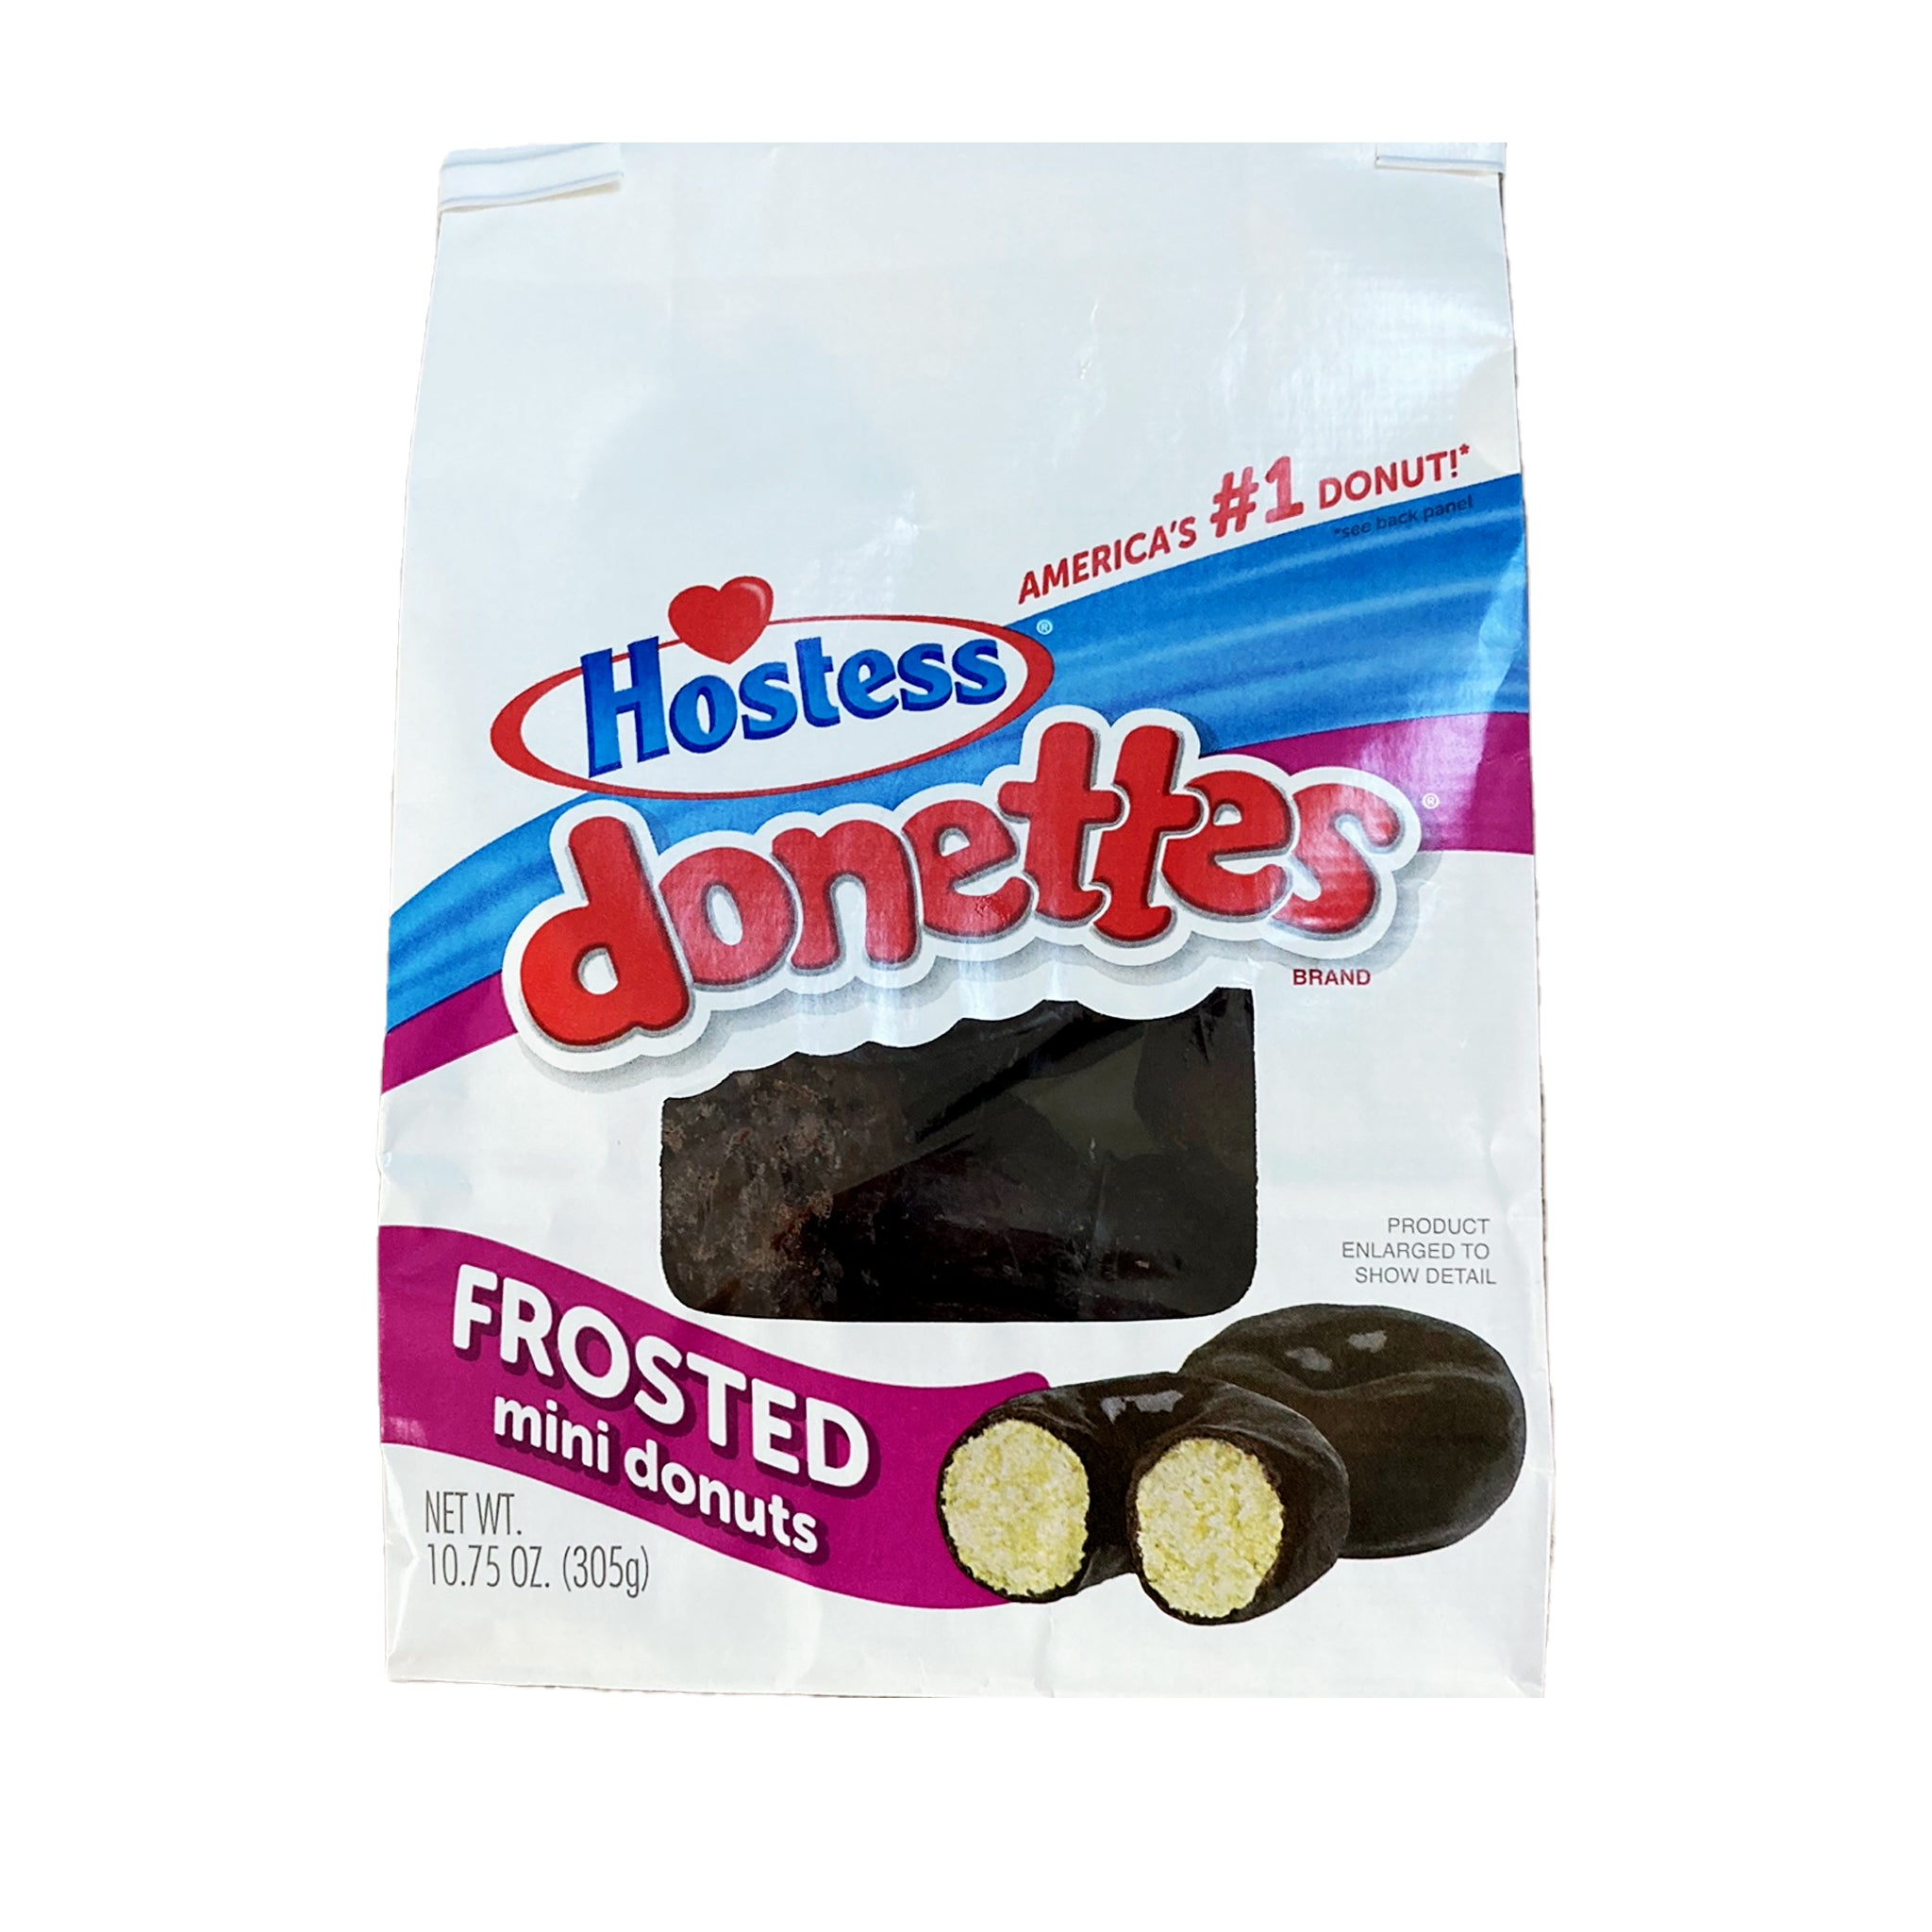 Hostess Donnettes frosted mini מיני דונאטס הוסטס - טעימים